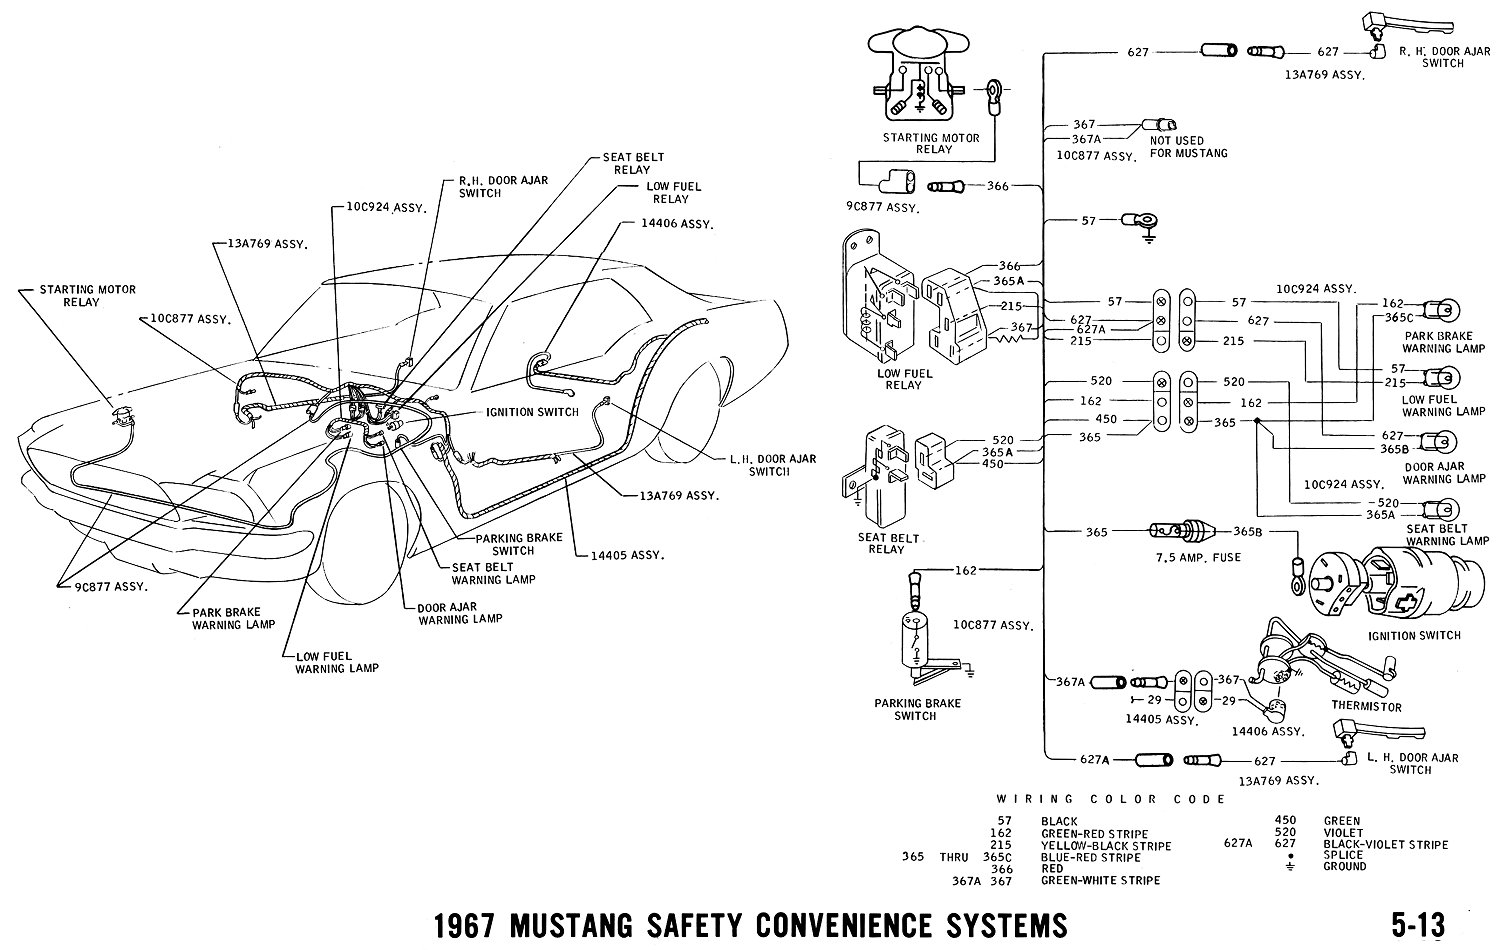 1967 Mustang Wiring And Vacuum Diagrams Average Joe Restoration 1980 Camaro Parking Brake Schematic Pictorial Seat Belt